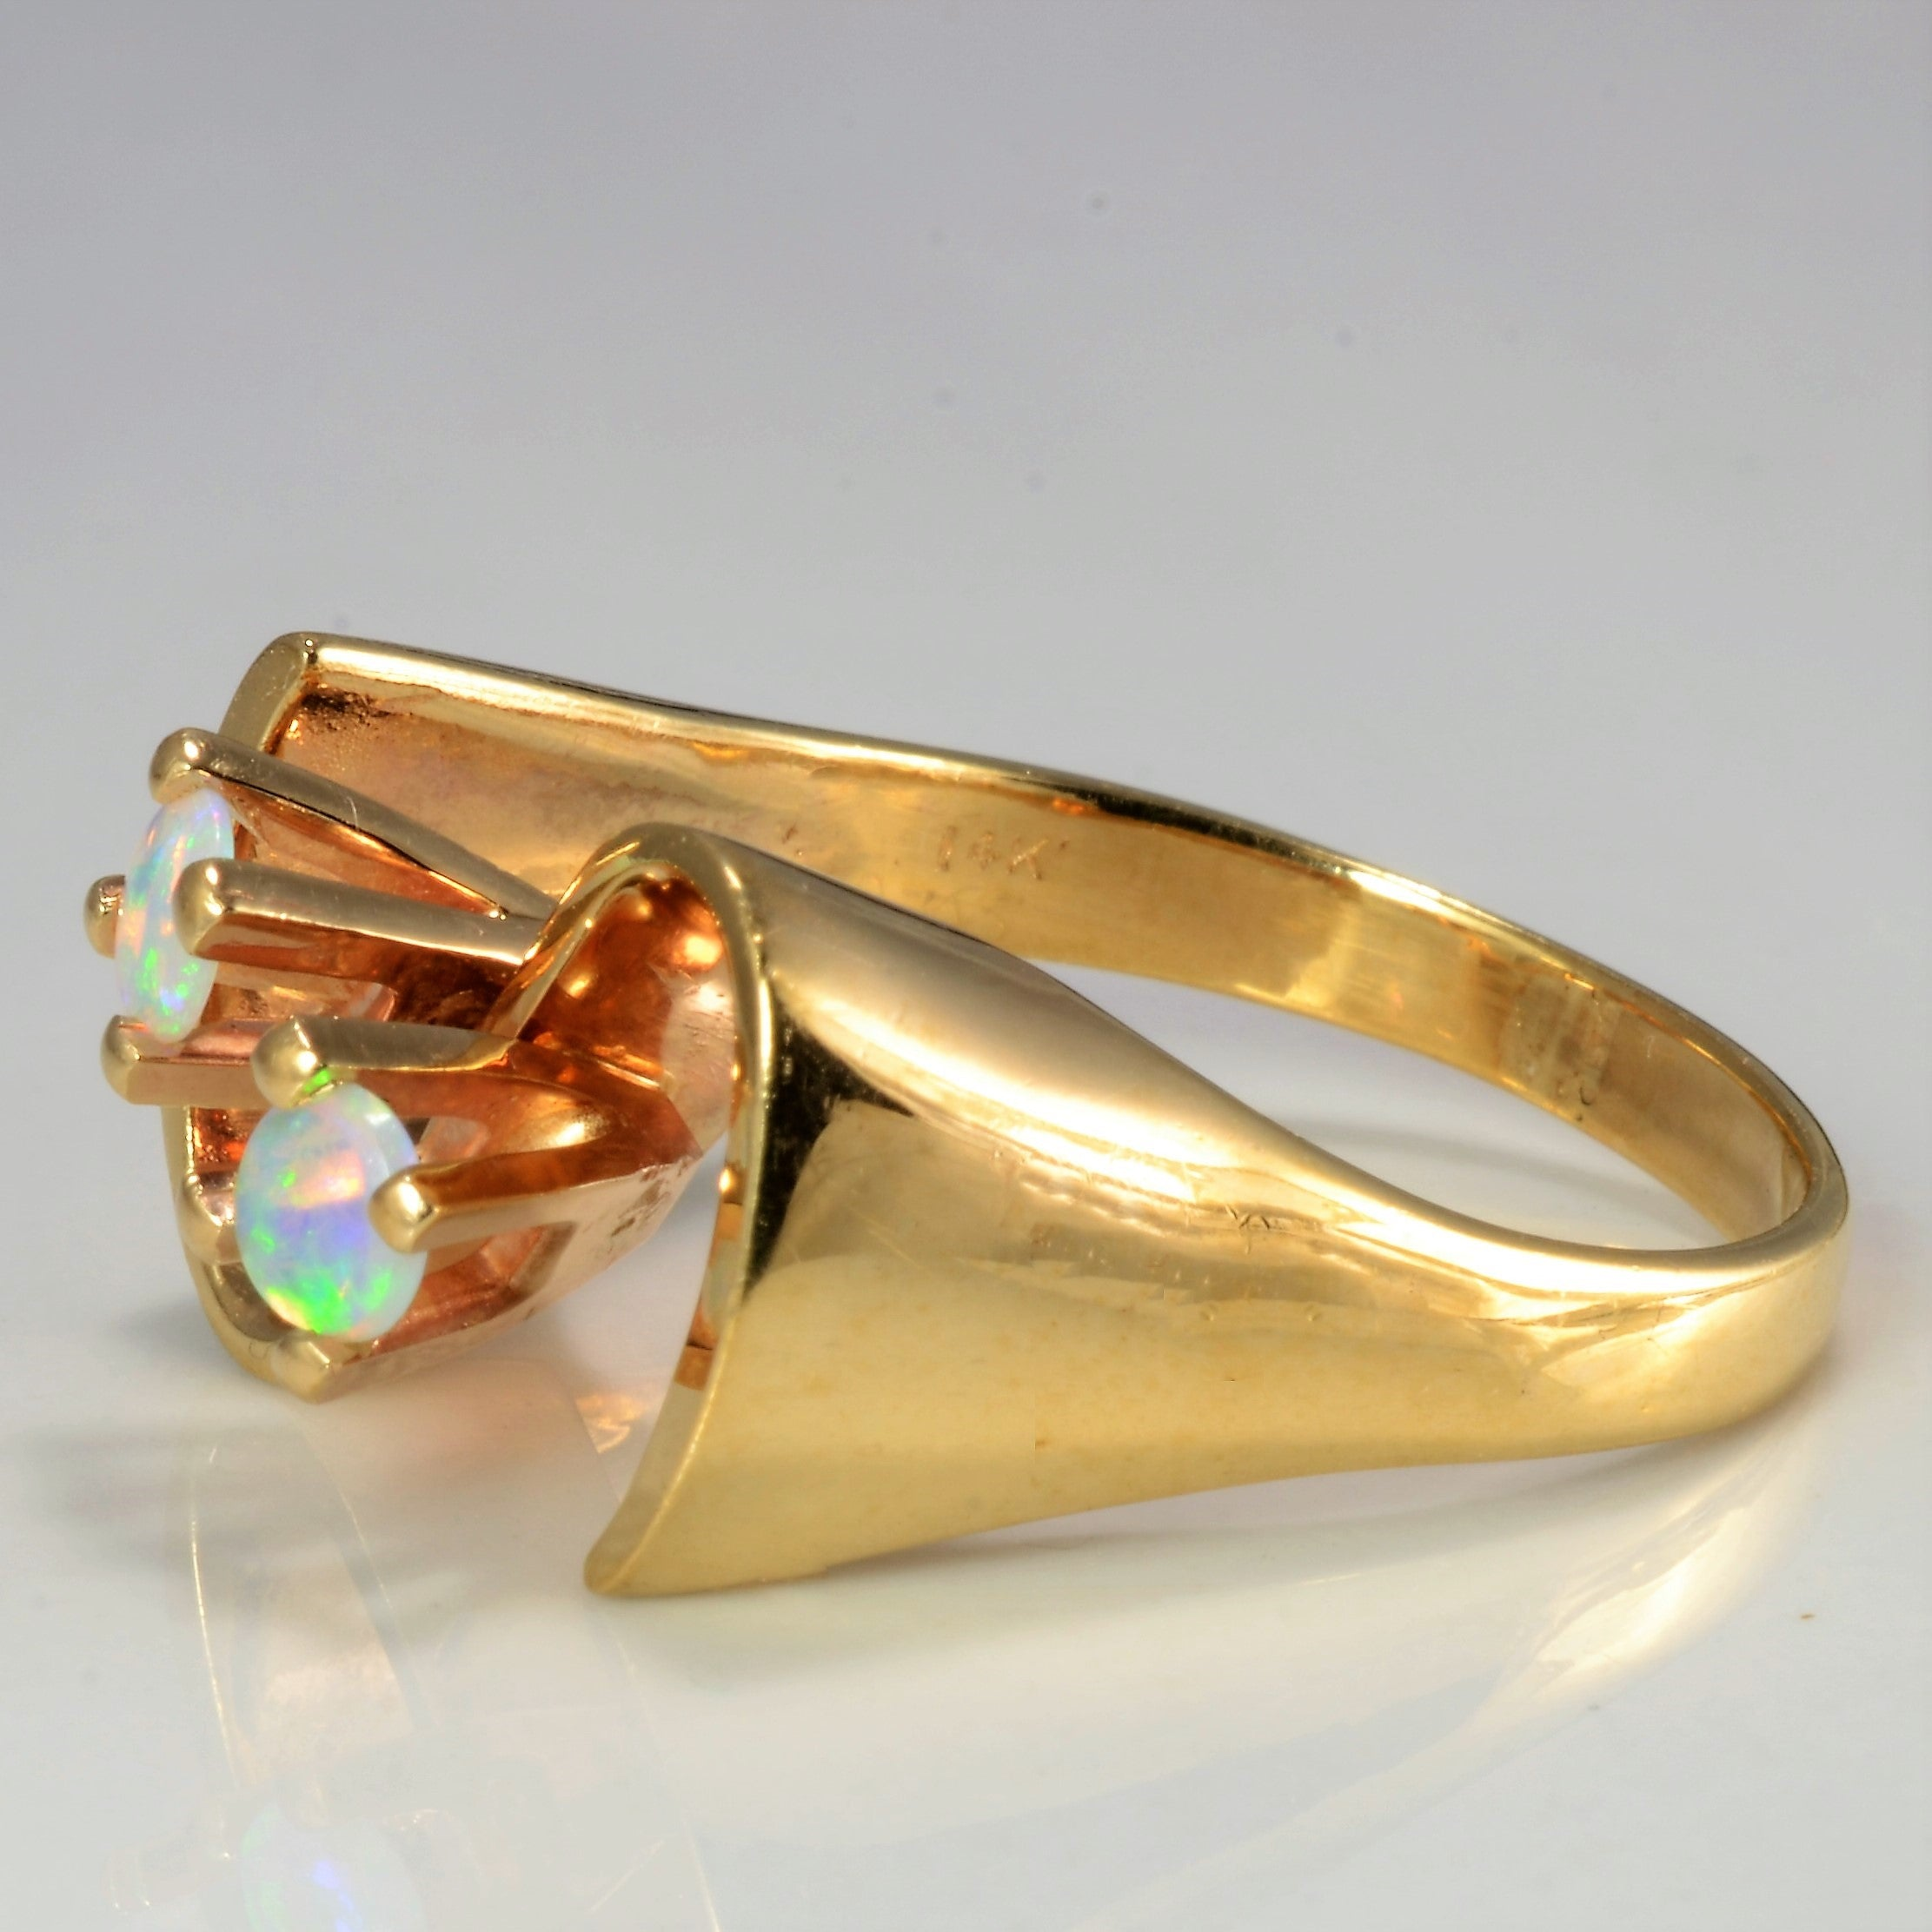 High Set Opal Textured Ring | SZ 8.25 |